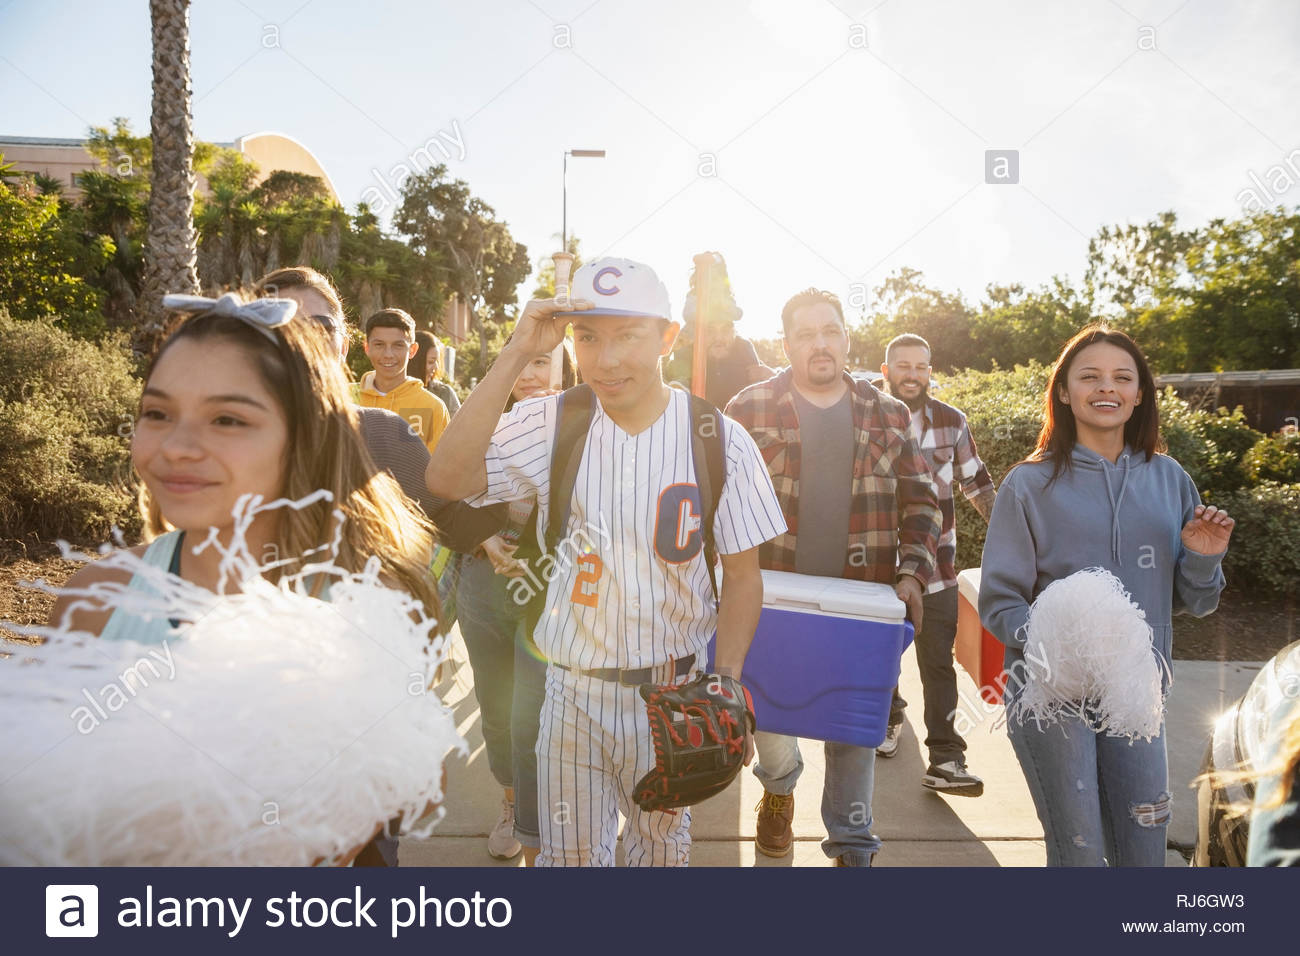 Baseball player and family arriving at game - Stock Image